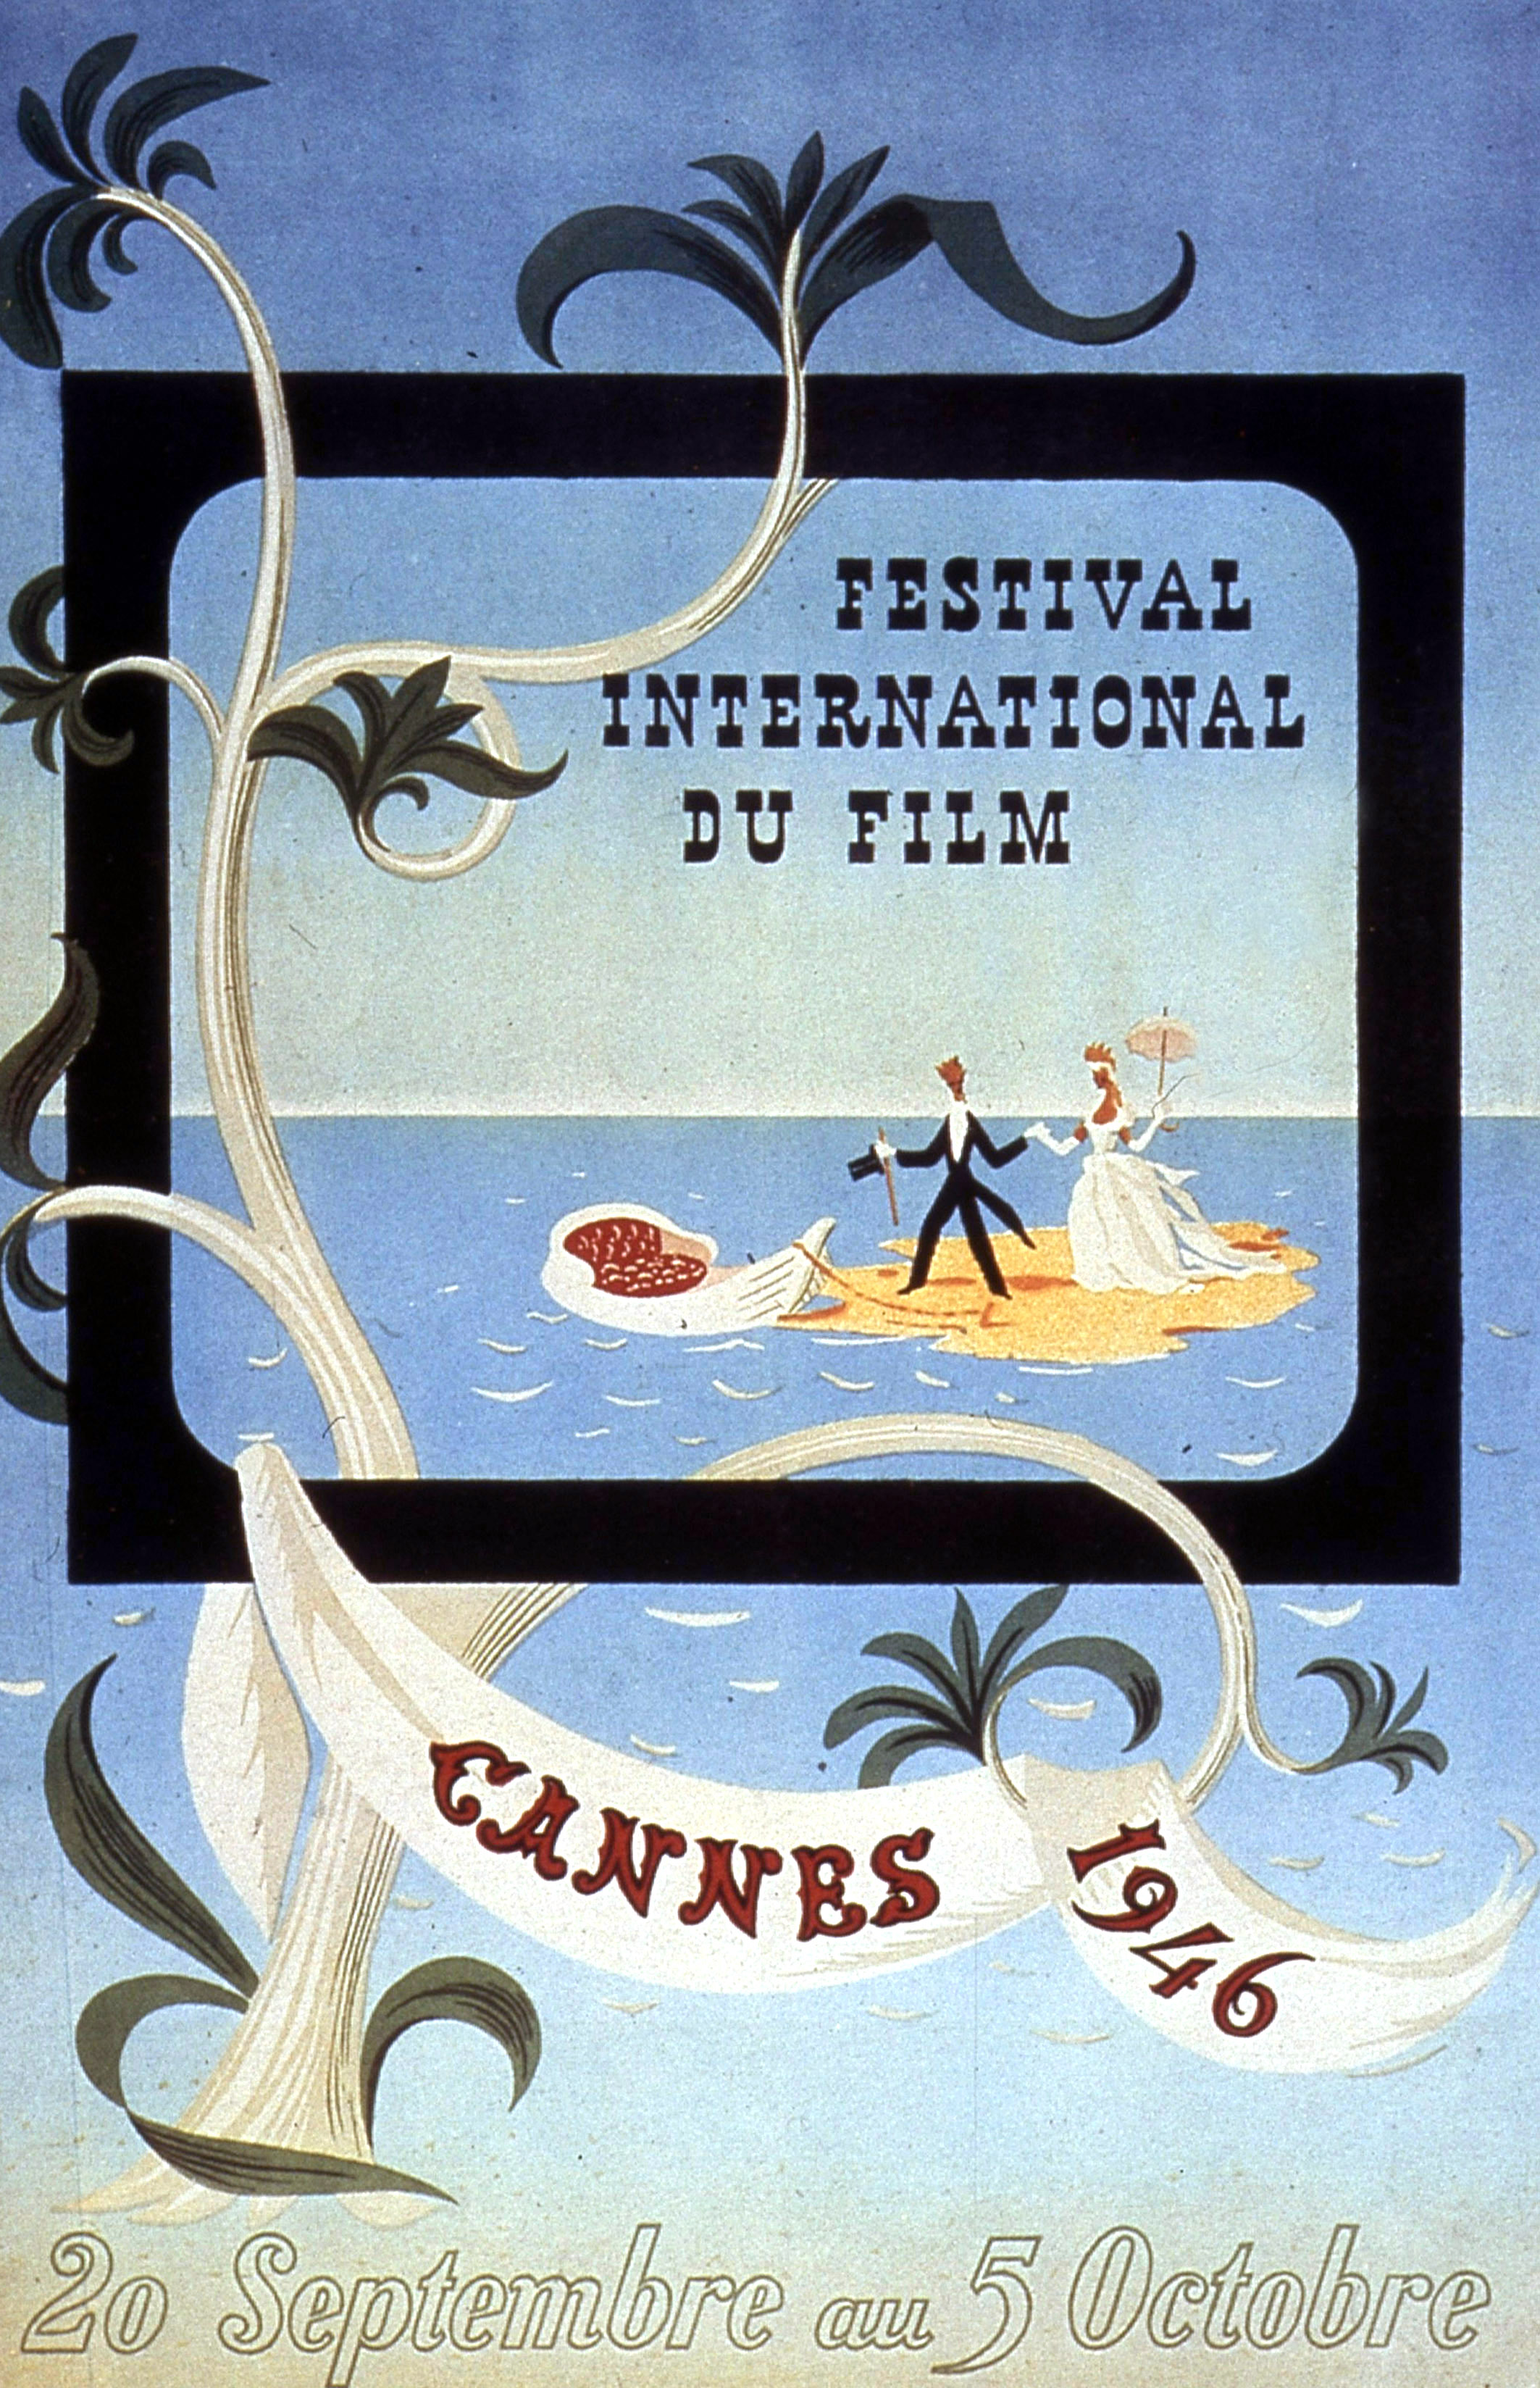 Poster by Leblanc for International Film Festival in Cannes in 1946